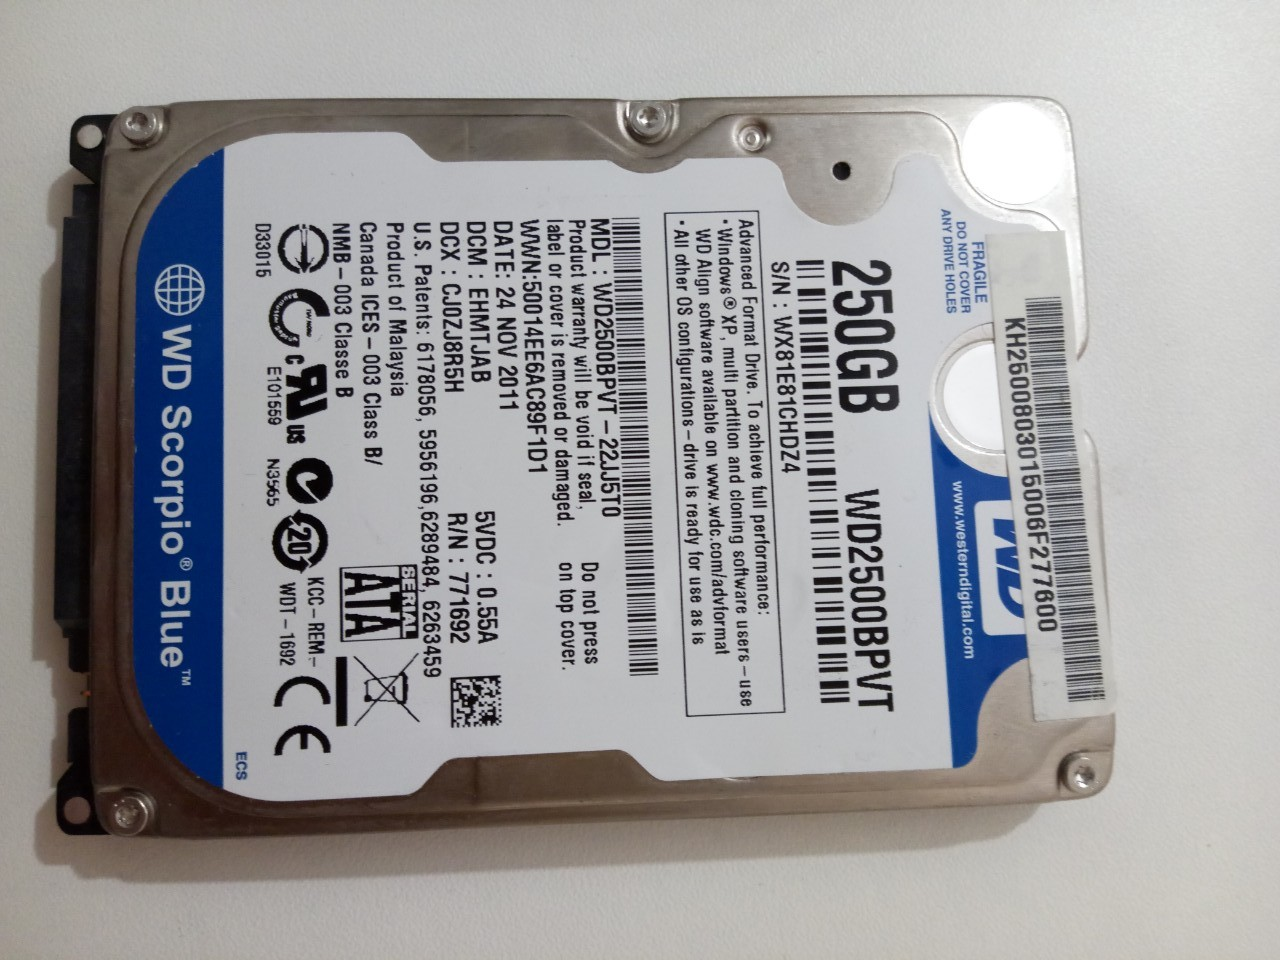 Жесткий диск Western Digital WD Scorpio Blue 250 GB (WD2500BPVT)